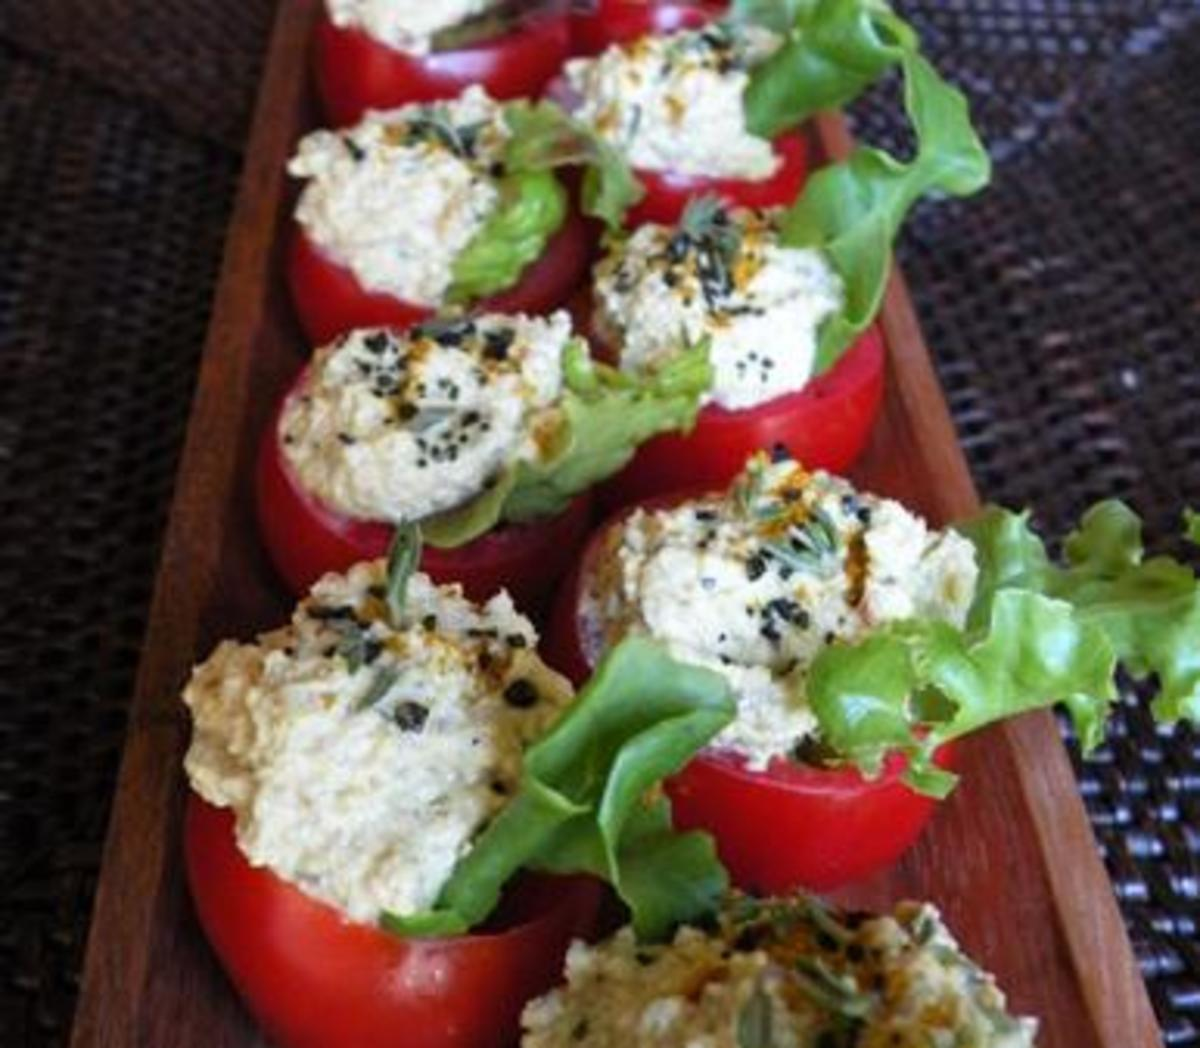 Easy finger foods, stuffed cherry tomatoes